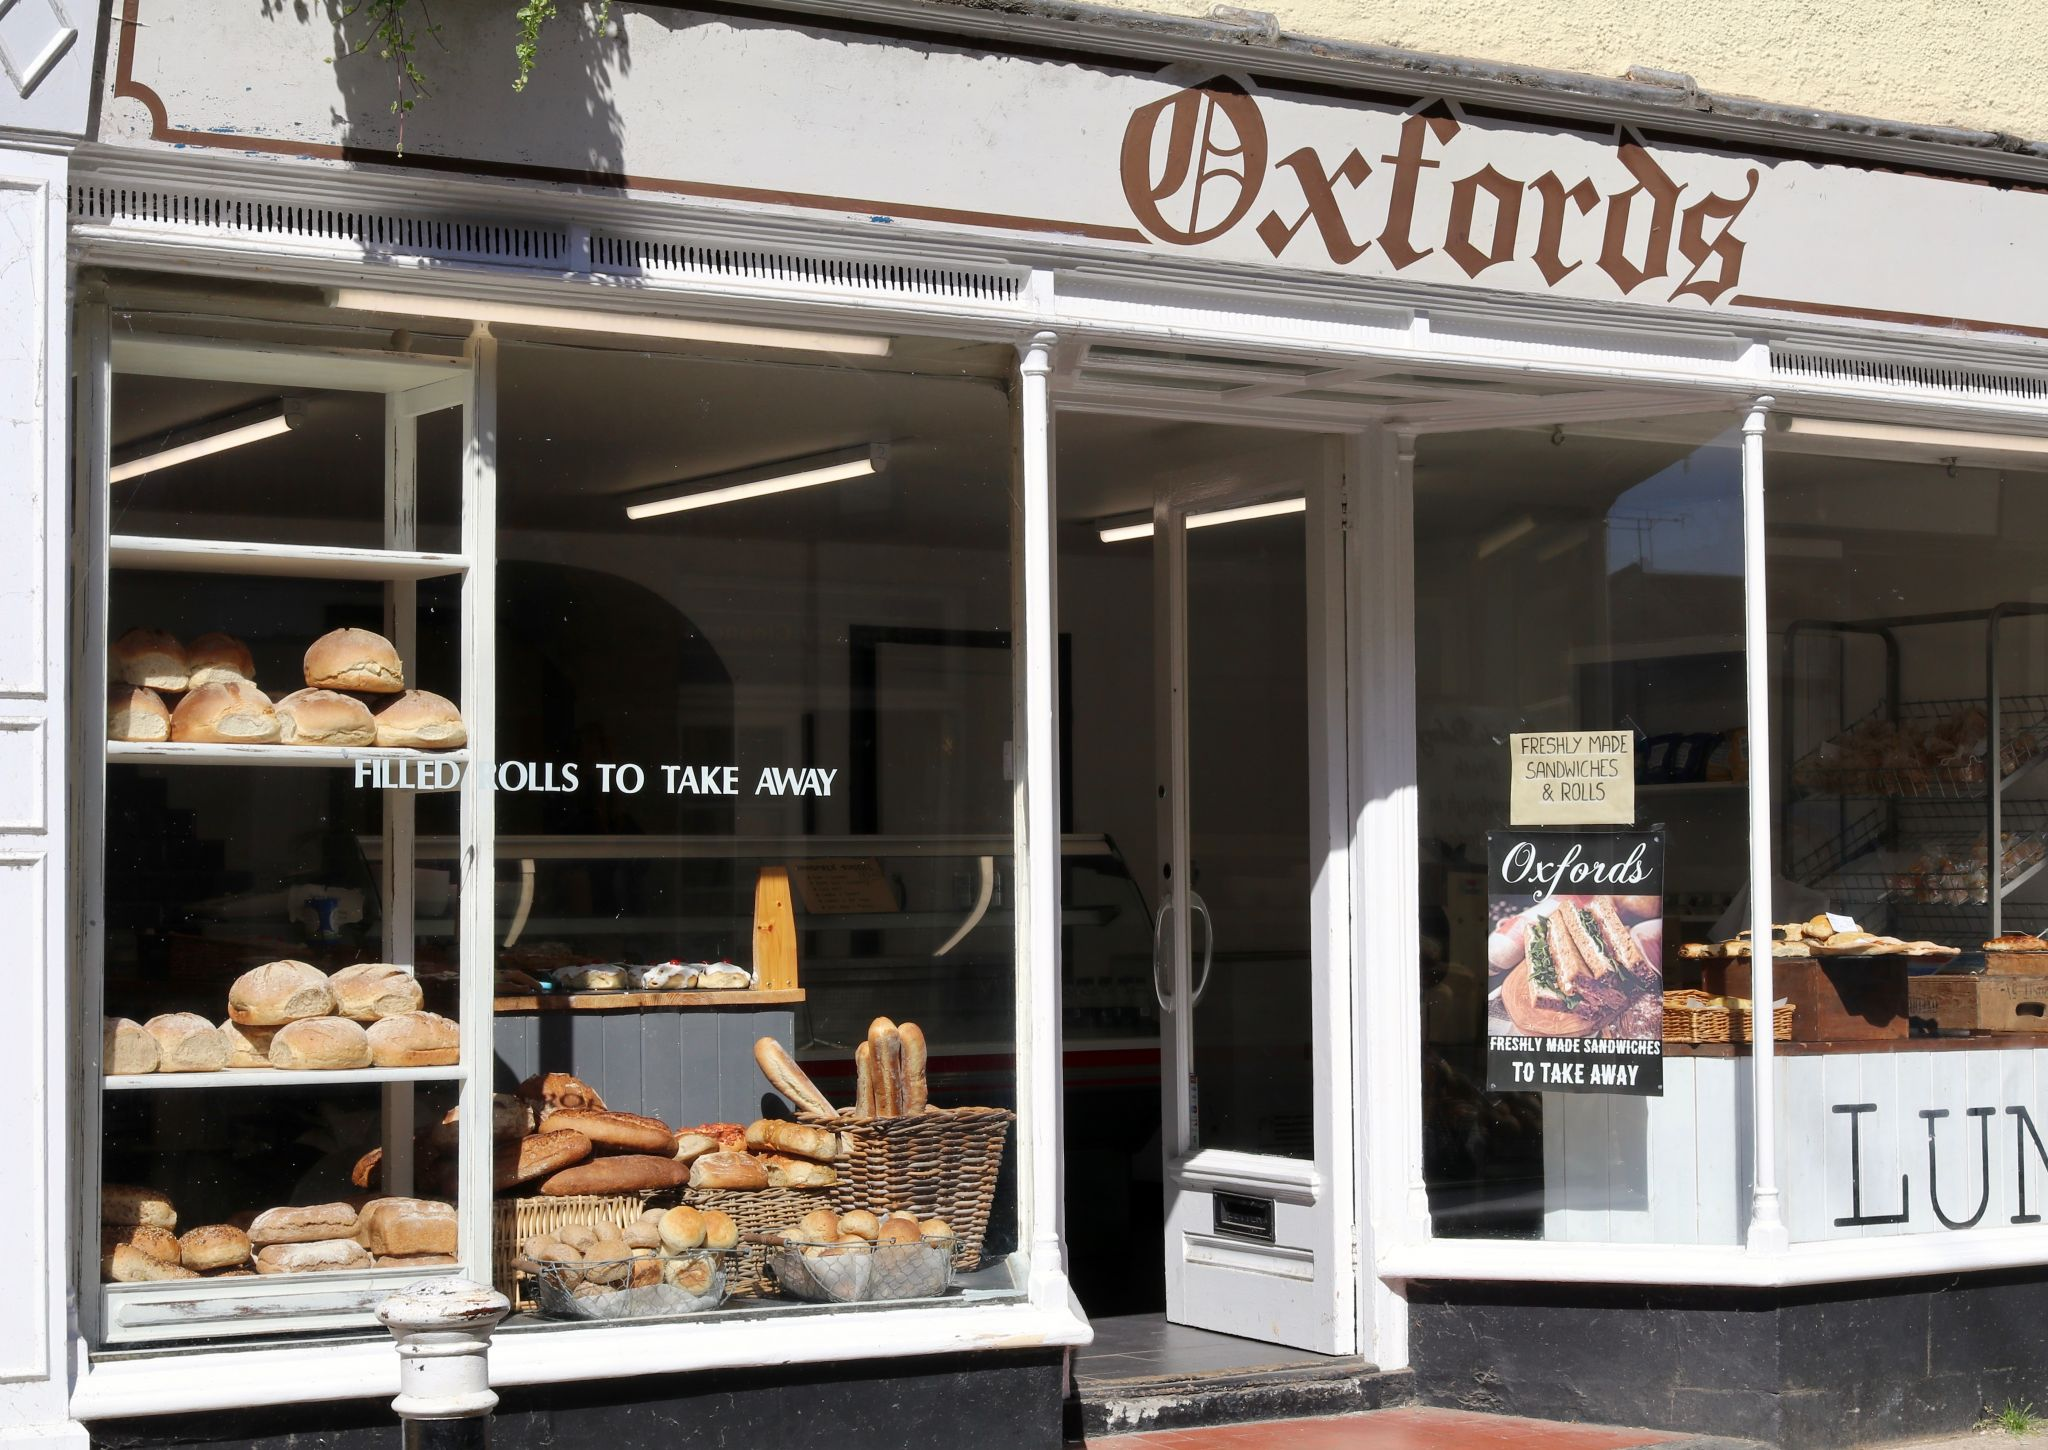 Sherborne Dorset Oxfords bakery